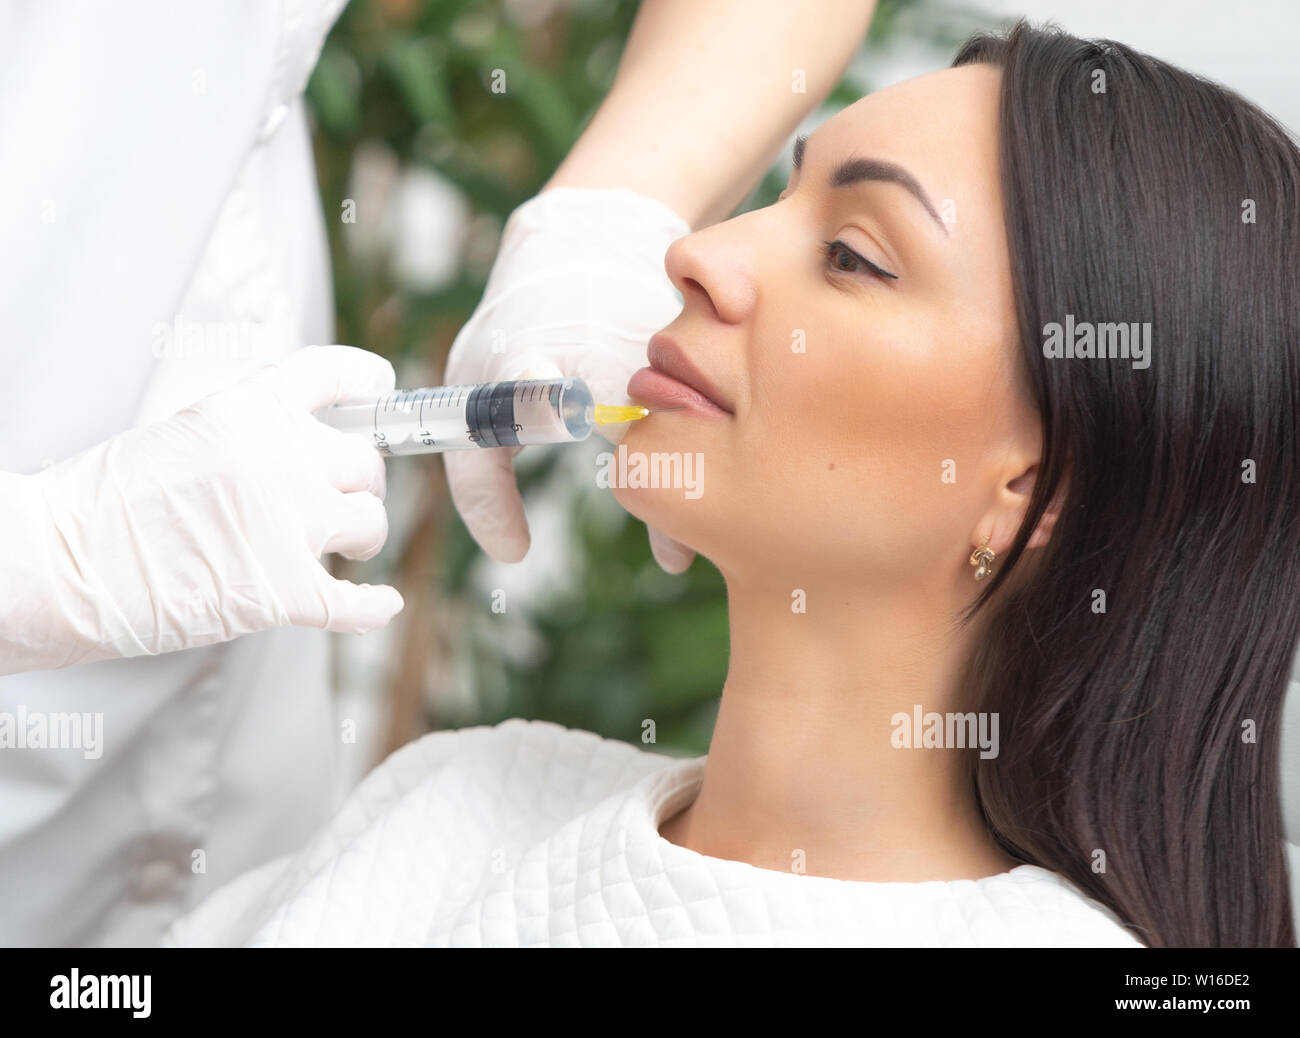 Filler injection for face  Plastic aesthetic facial surgery  Doctor